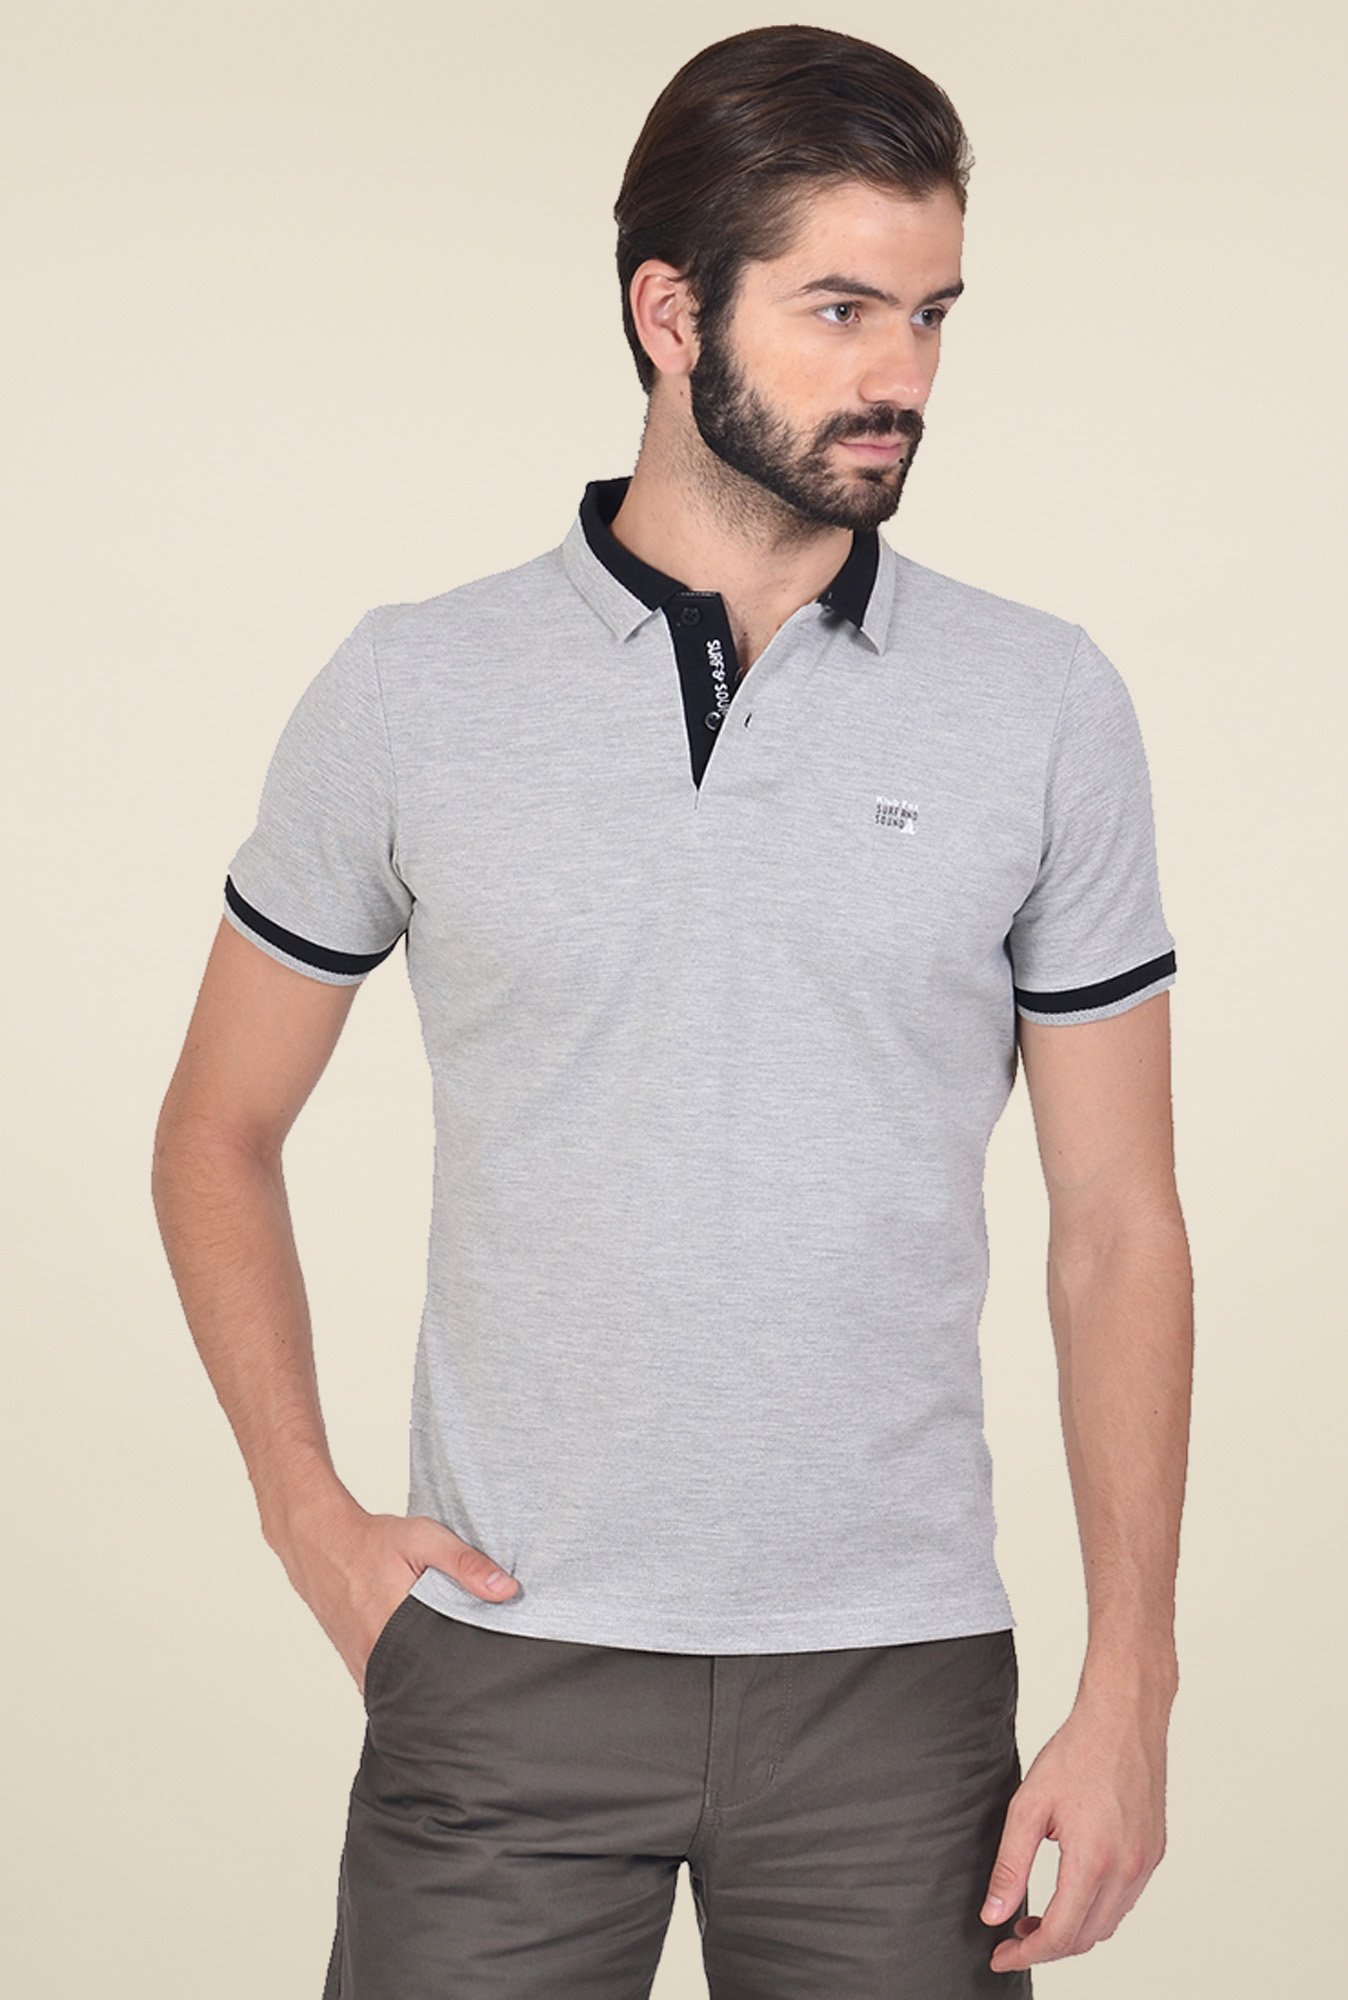 Club Fox Light Grey Cotton Polo T-Shirt